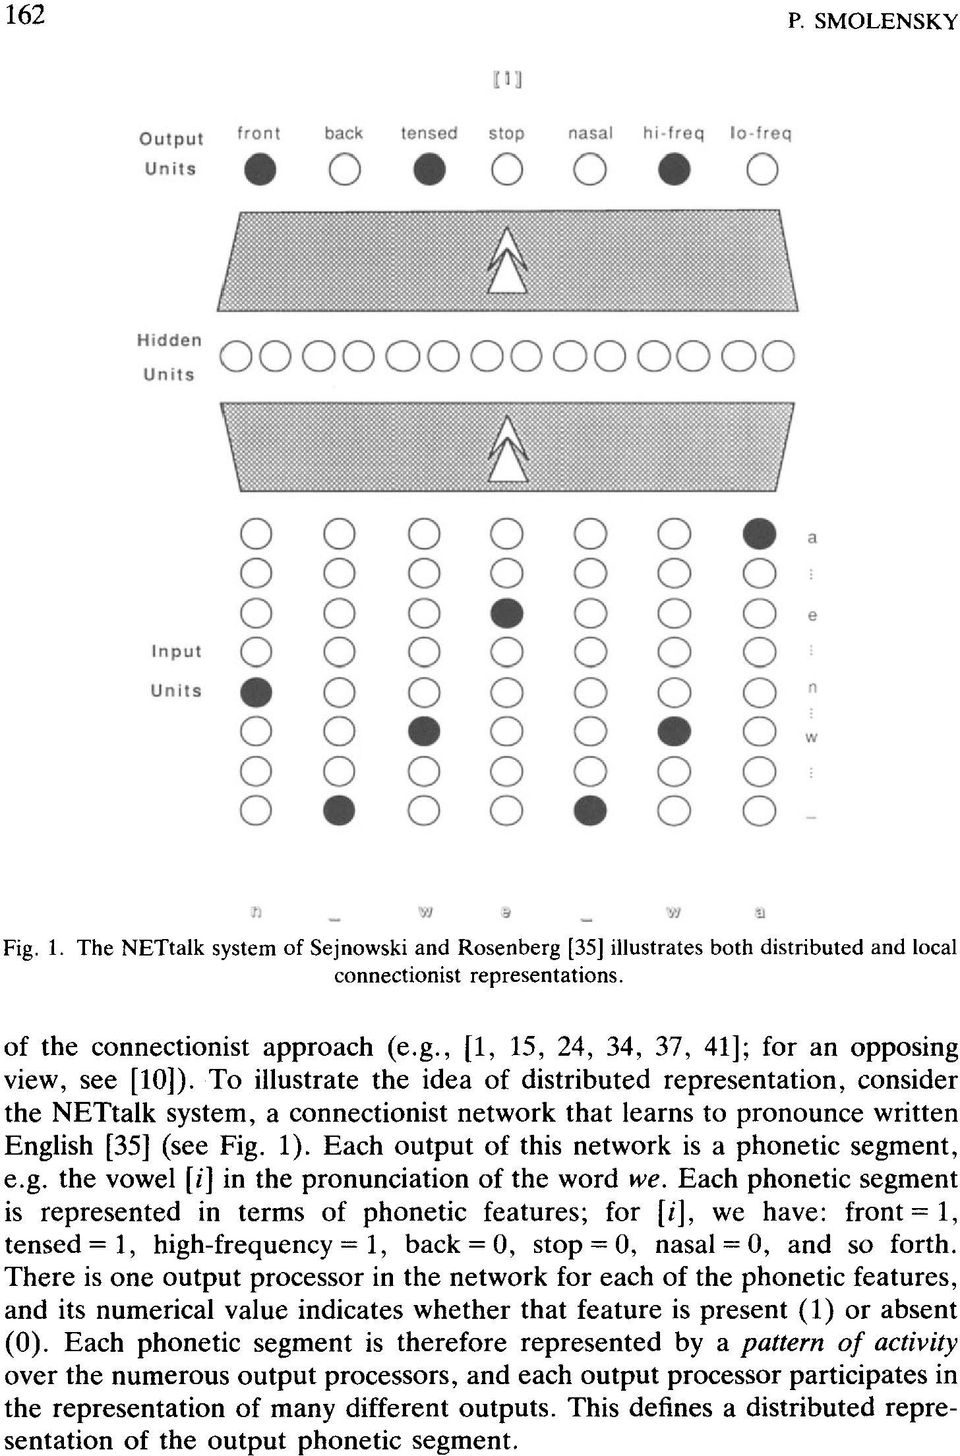 To illustrate the idea of distributed representation, consider the NETtalk system, a connectionist network that learns to pronounce written English [35] (see Fig. 1).